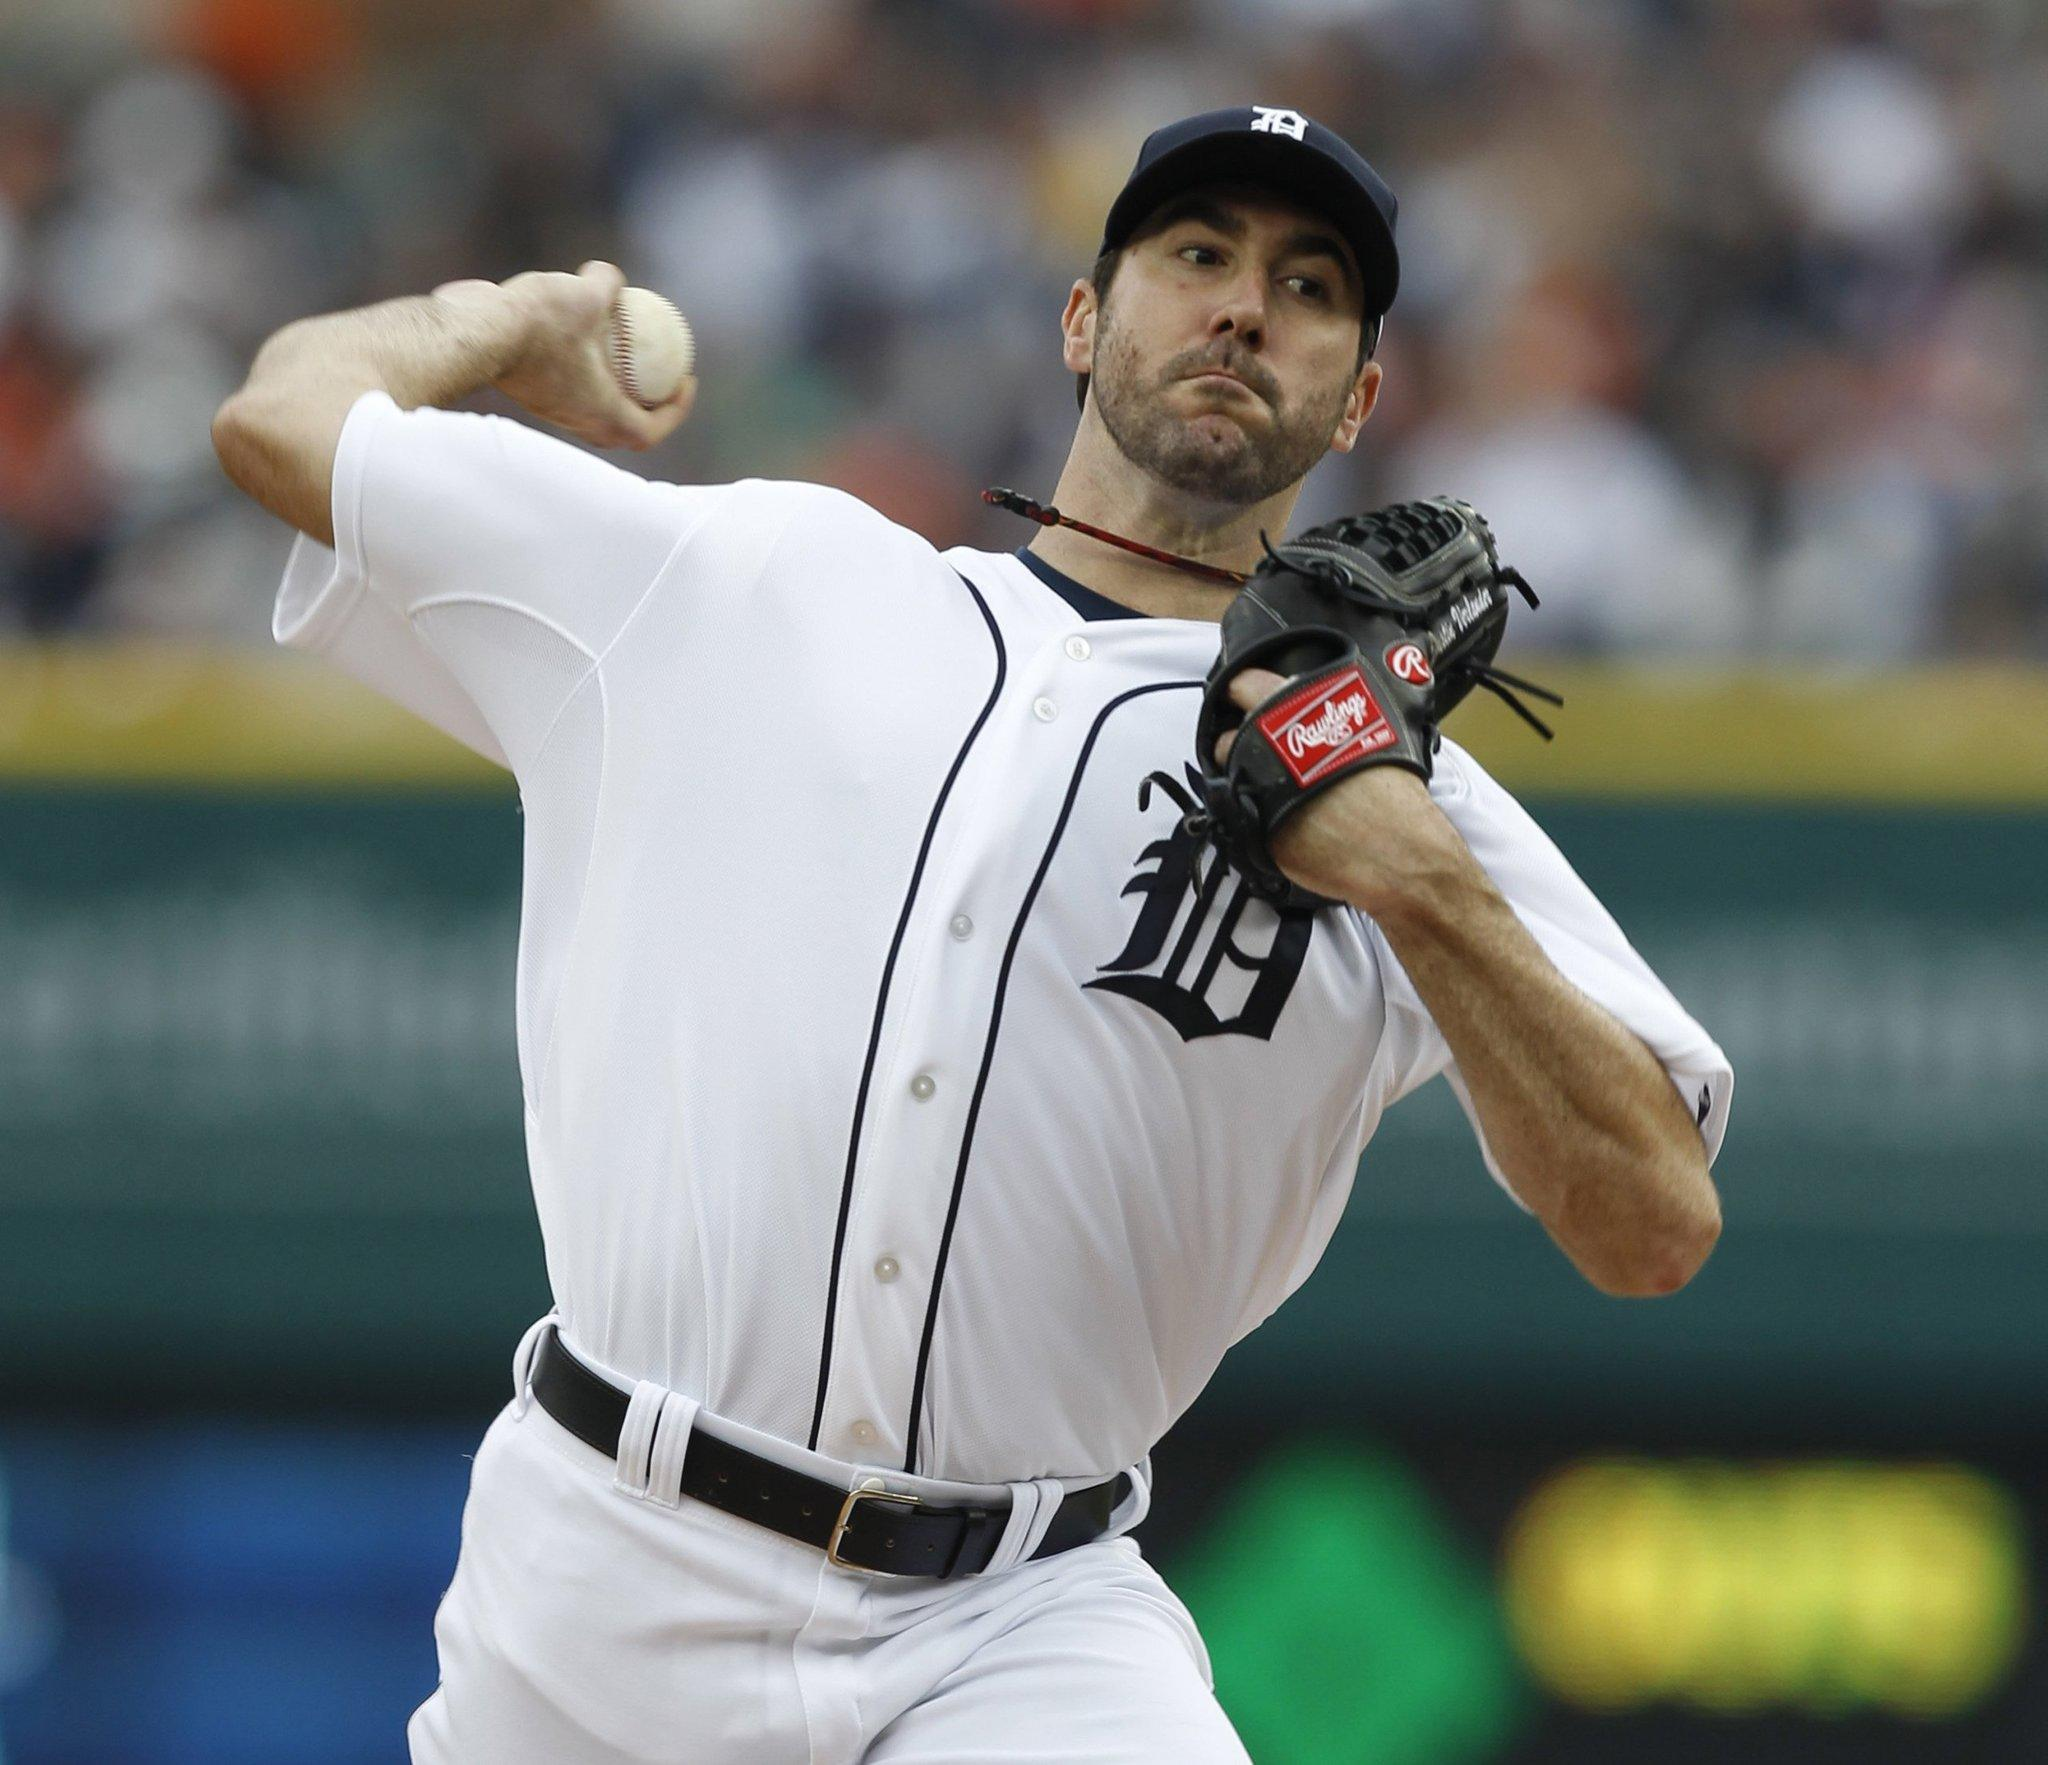 Detroit Tigers pitcher Justin Verlander.